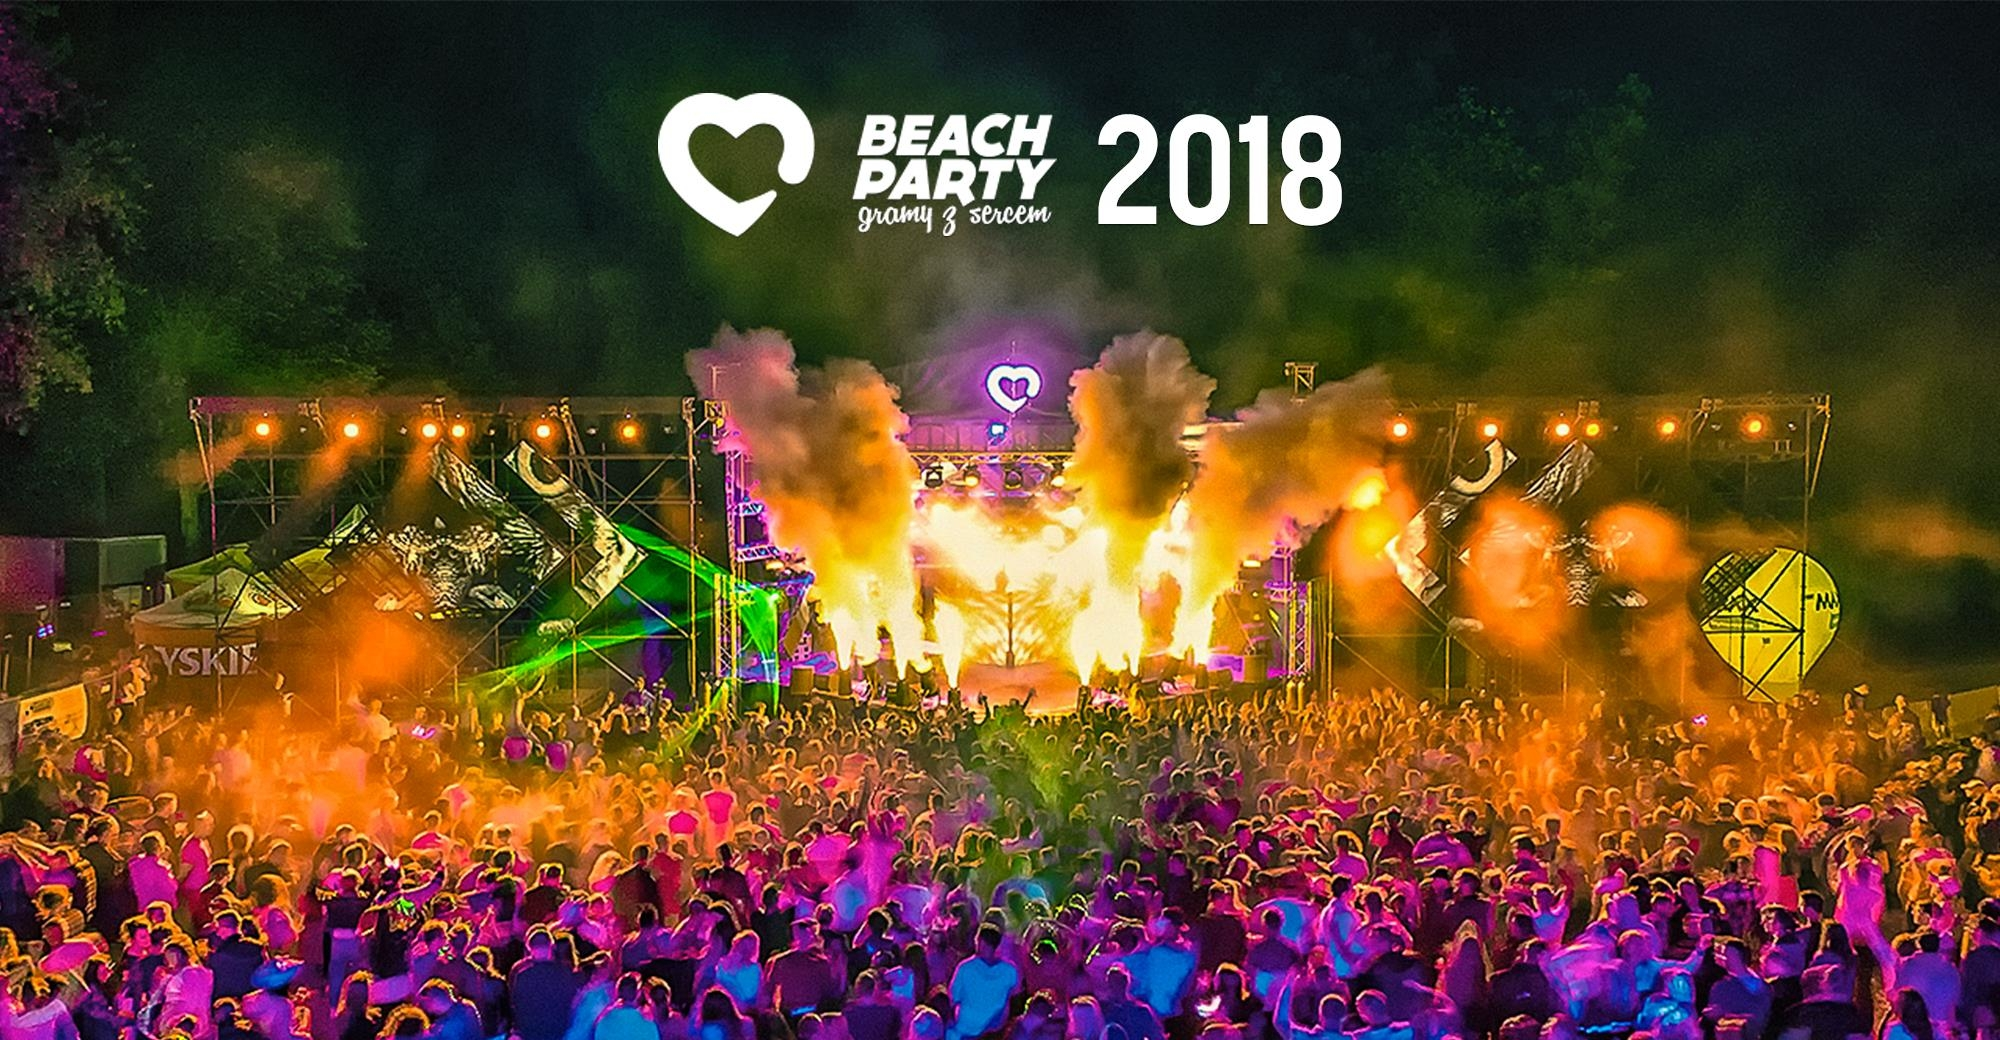 BEACH PARTY 2018 | Trzcianka